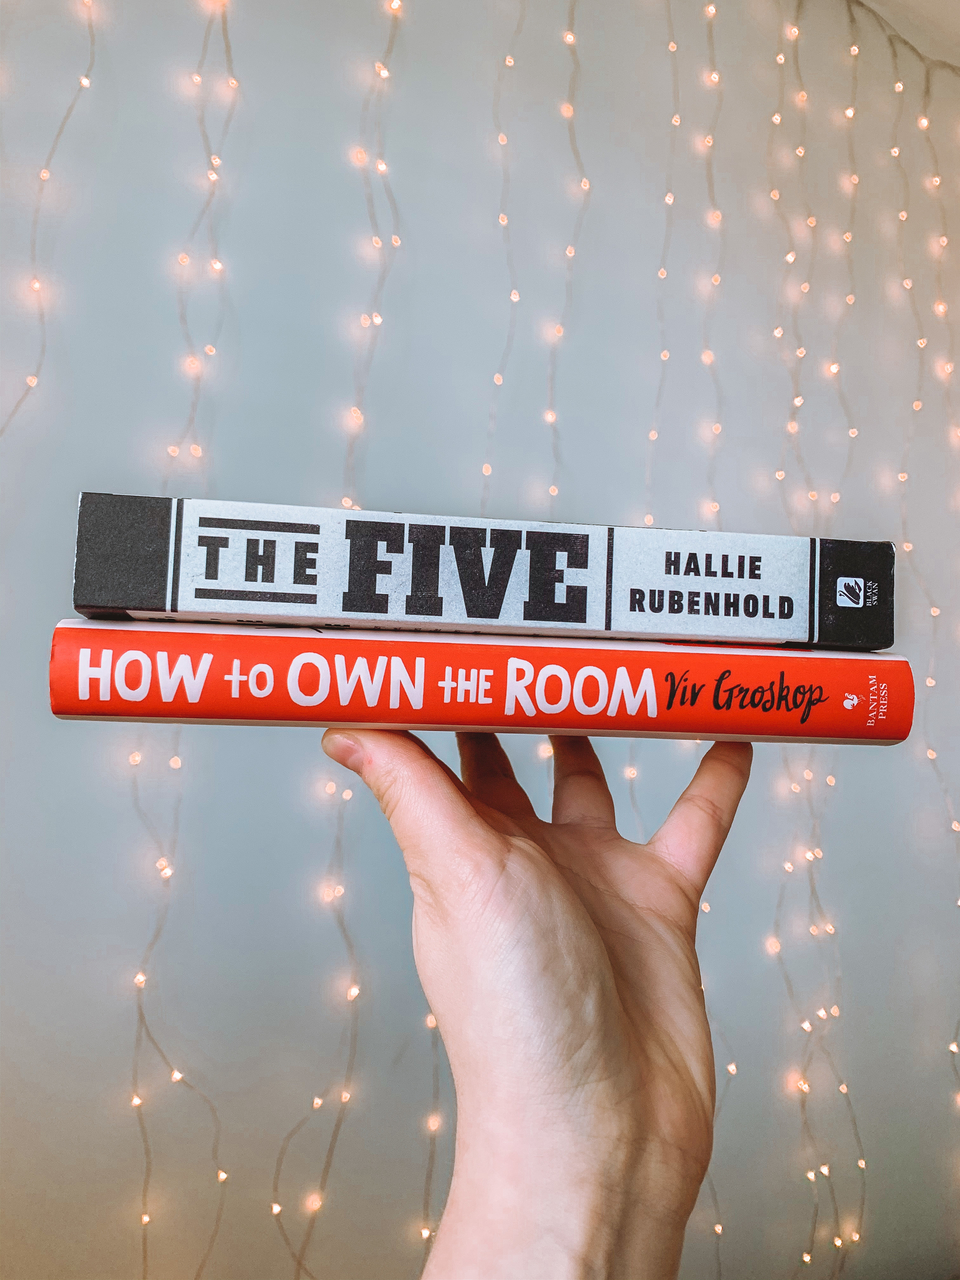 20 books to read in 2020 non fiction The Five by Hallie Rubenhold, How To Own The Room by Viv Groskop